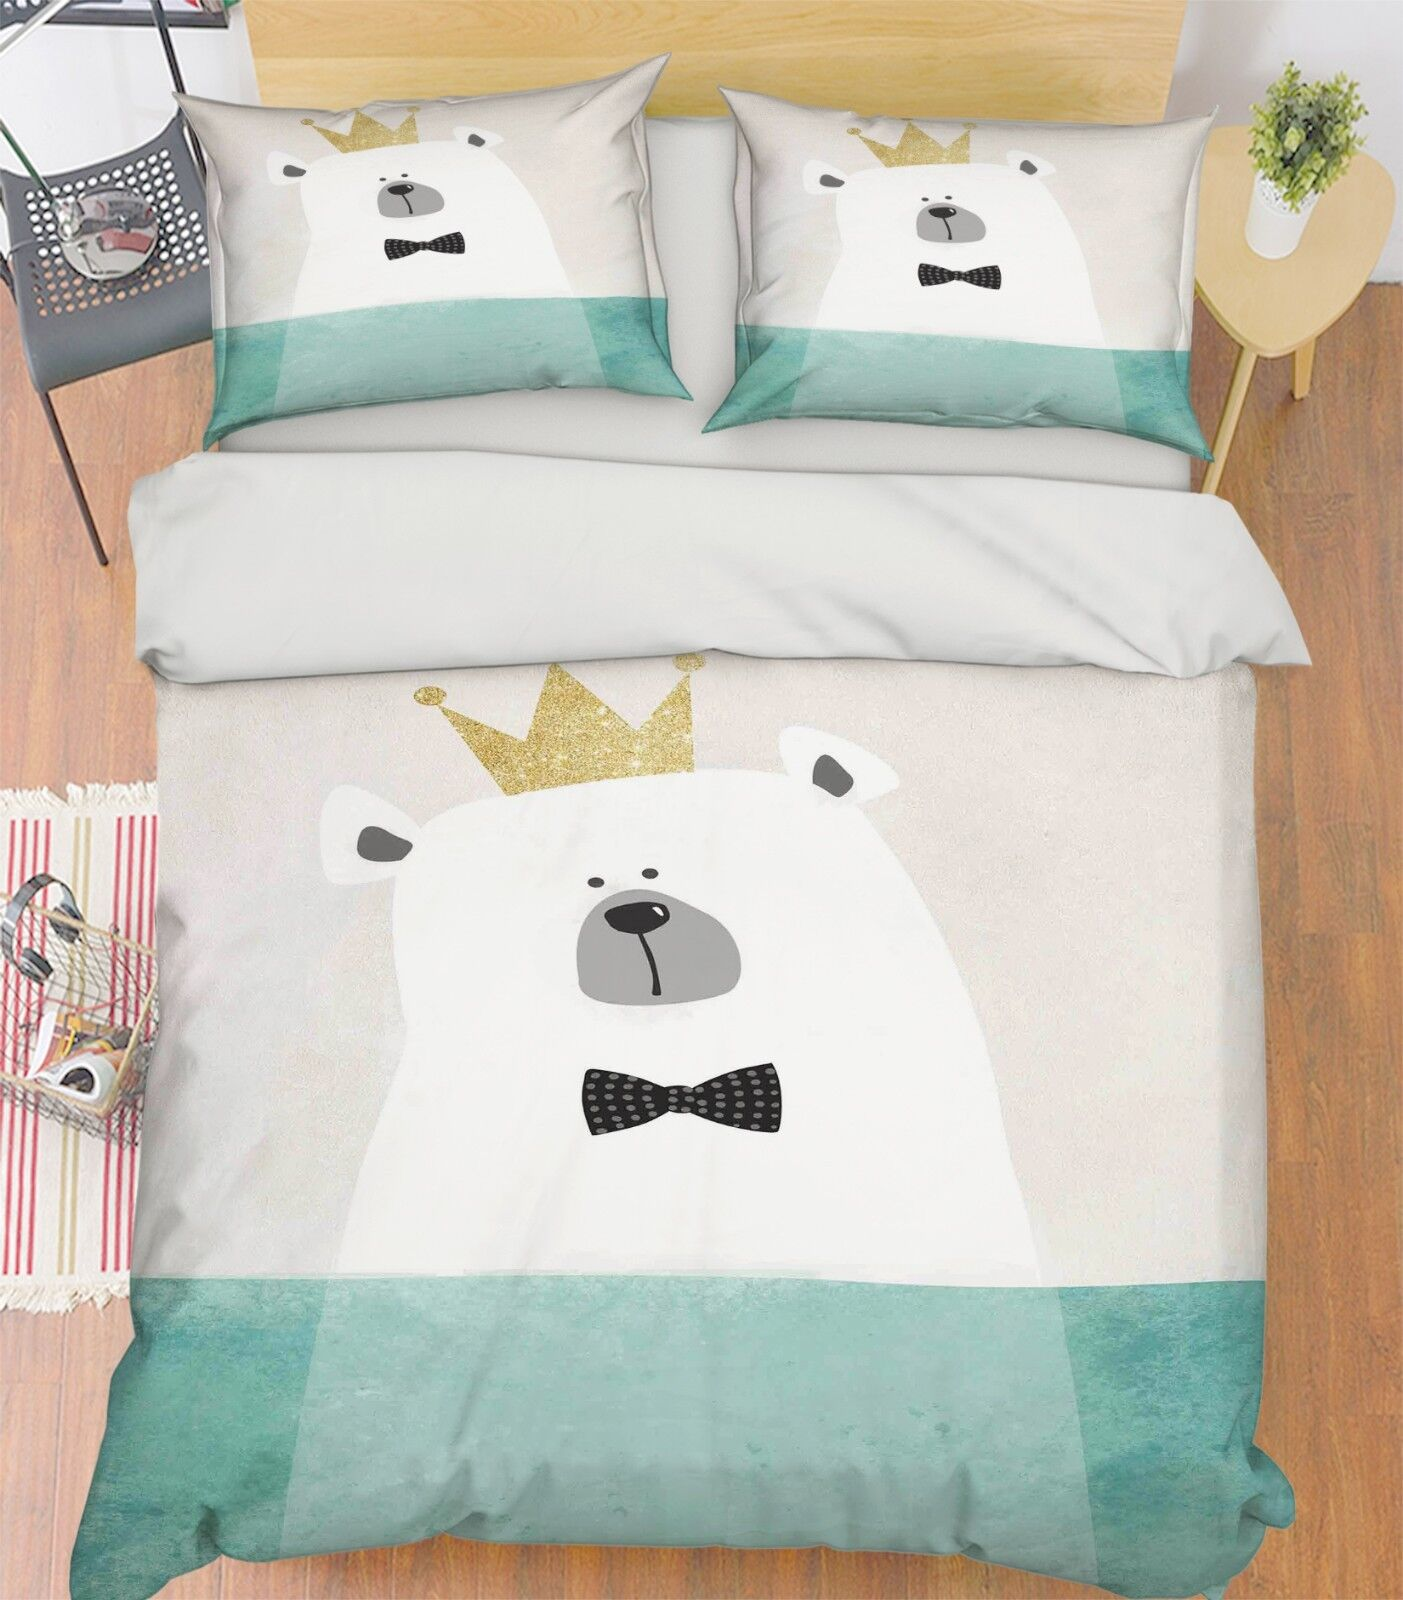 3D Cartoon Bear 588 Bed Pillowcases Quilt Duvet Cover Set Single King UK Summer